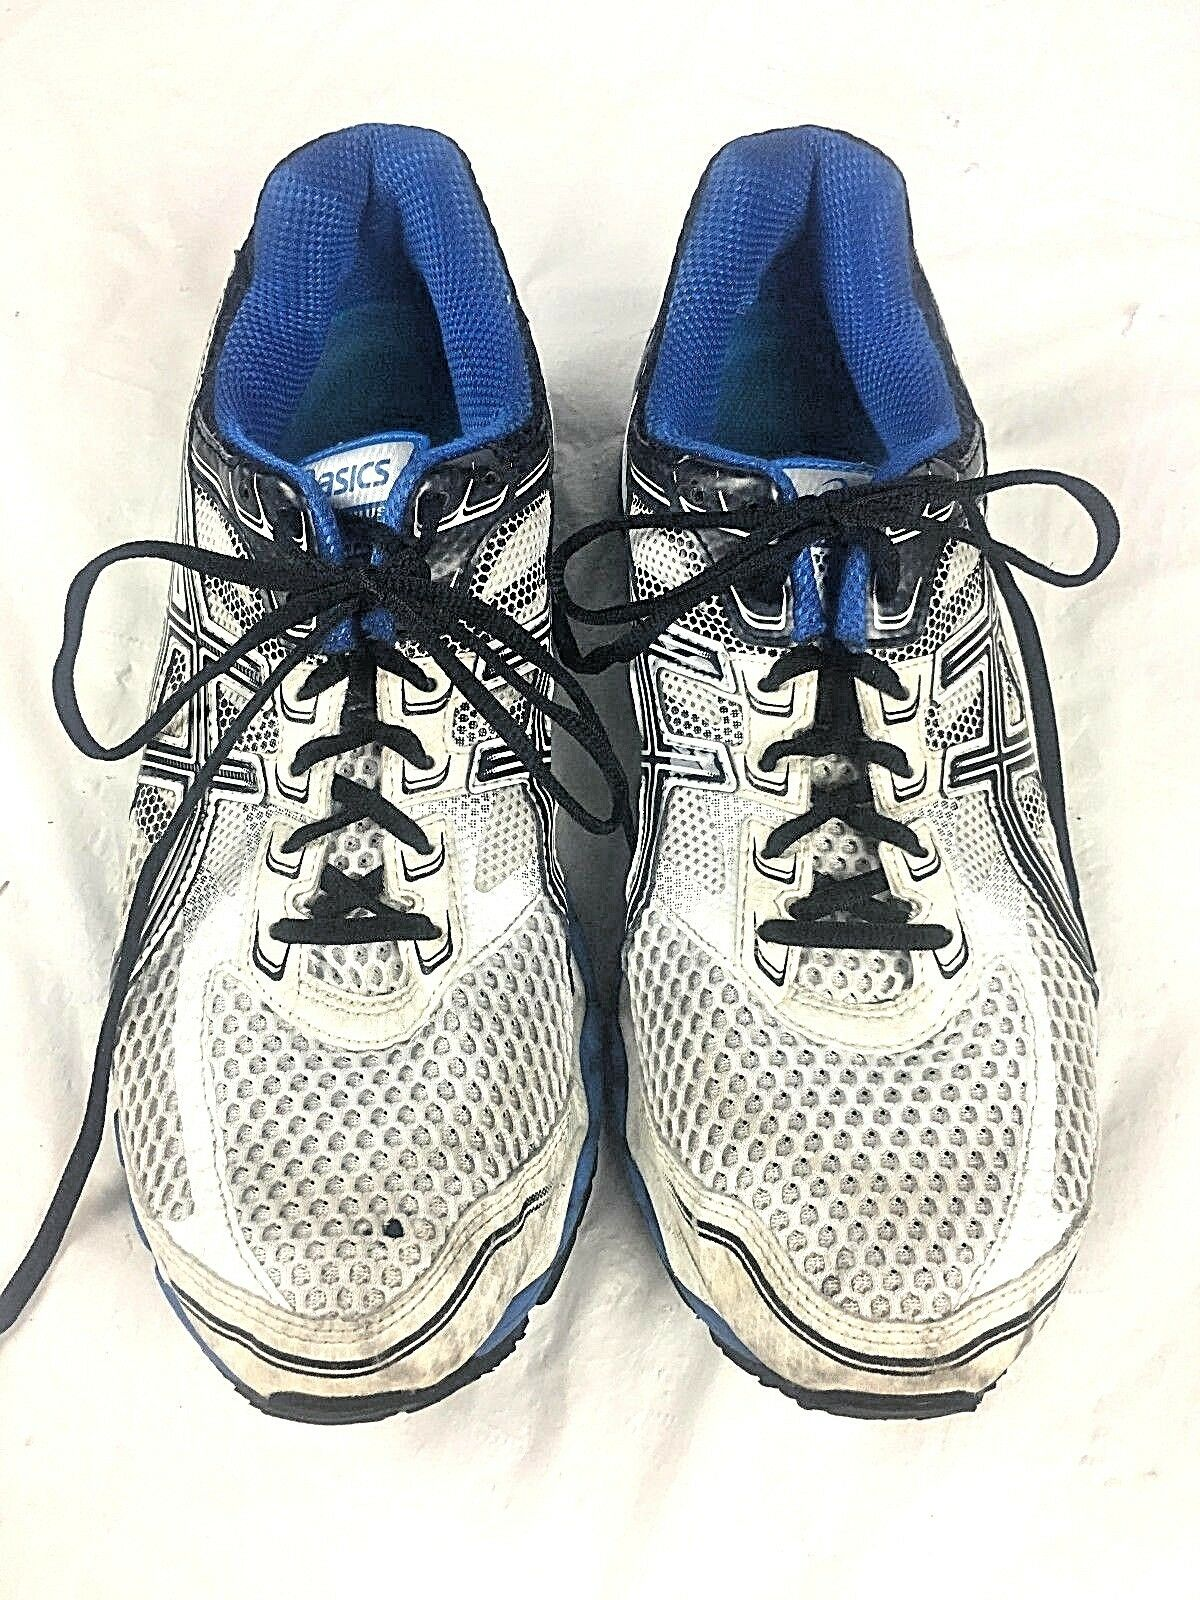 ASICS Gel Cumulus 15 Running shoes Mens 11 White bluee Black